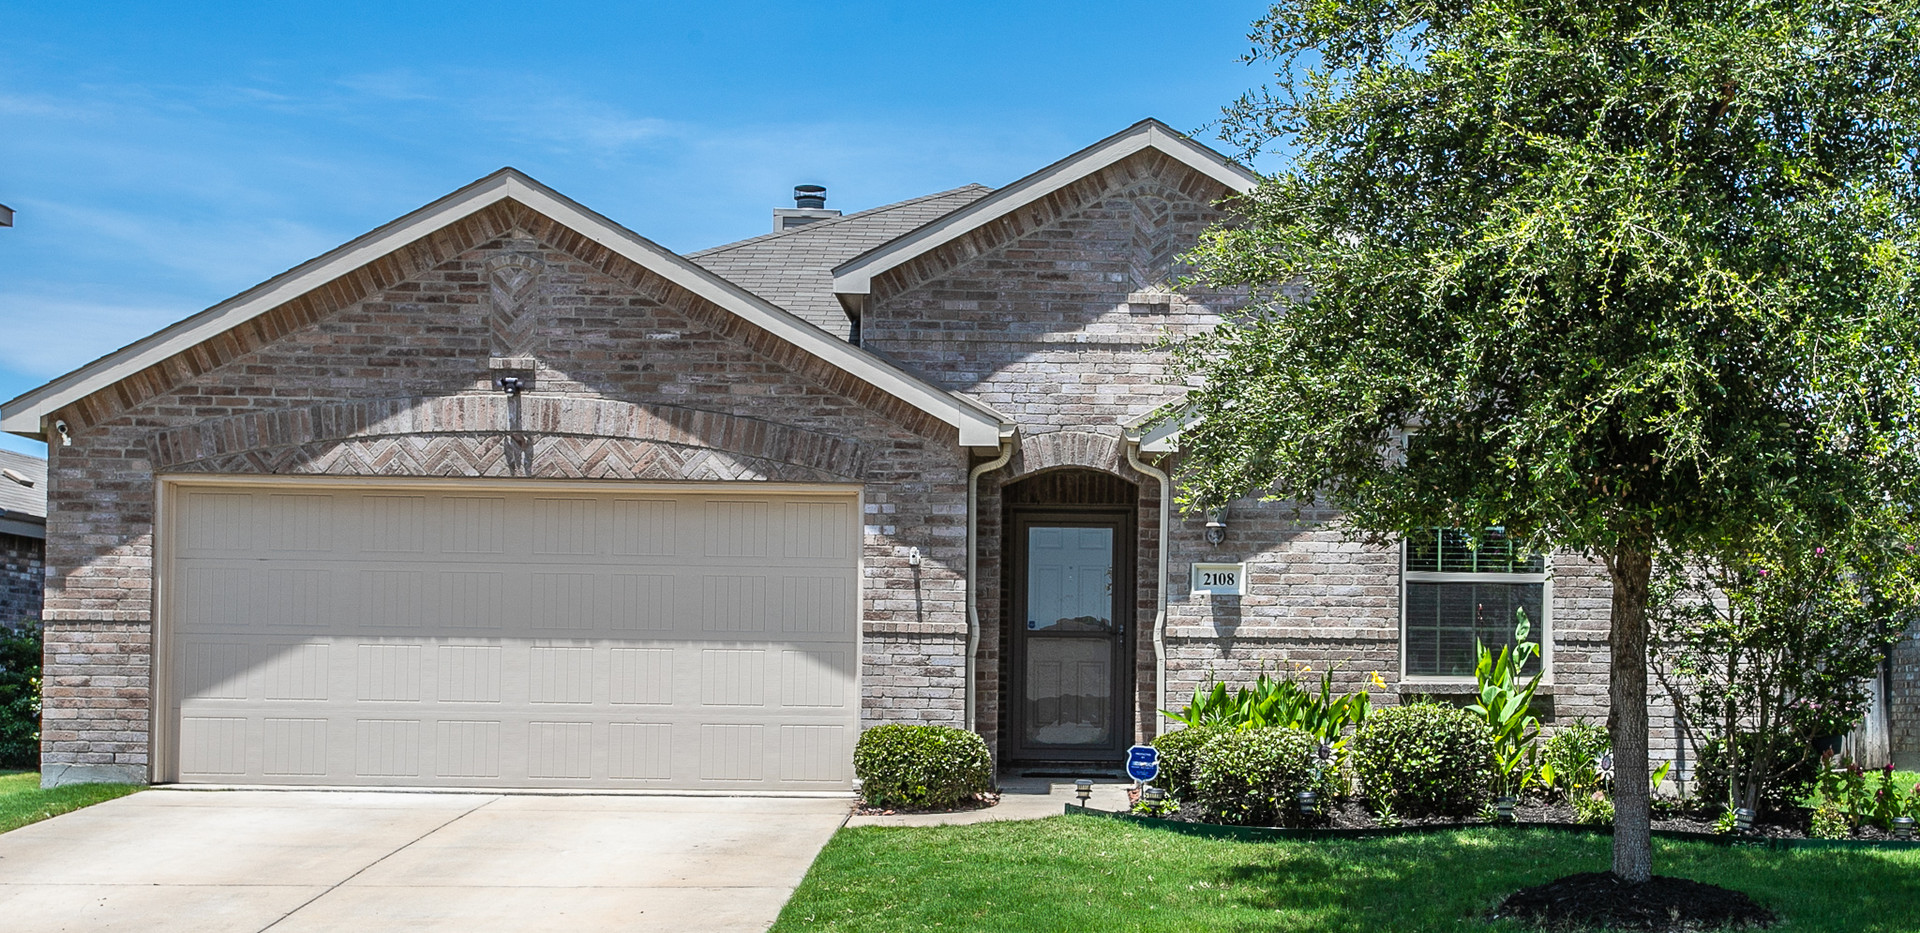 2108 Rains County Rd, Forney